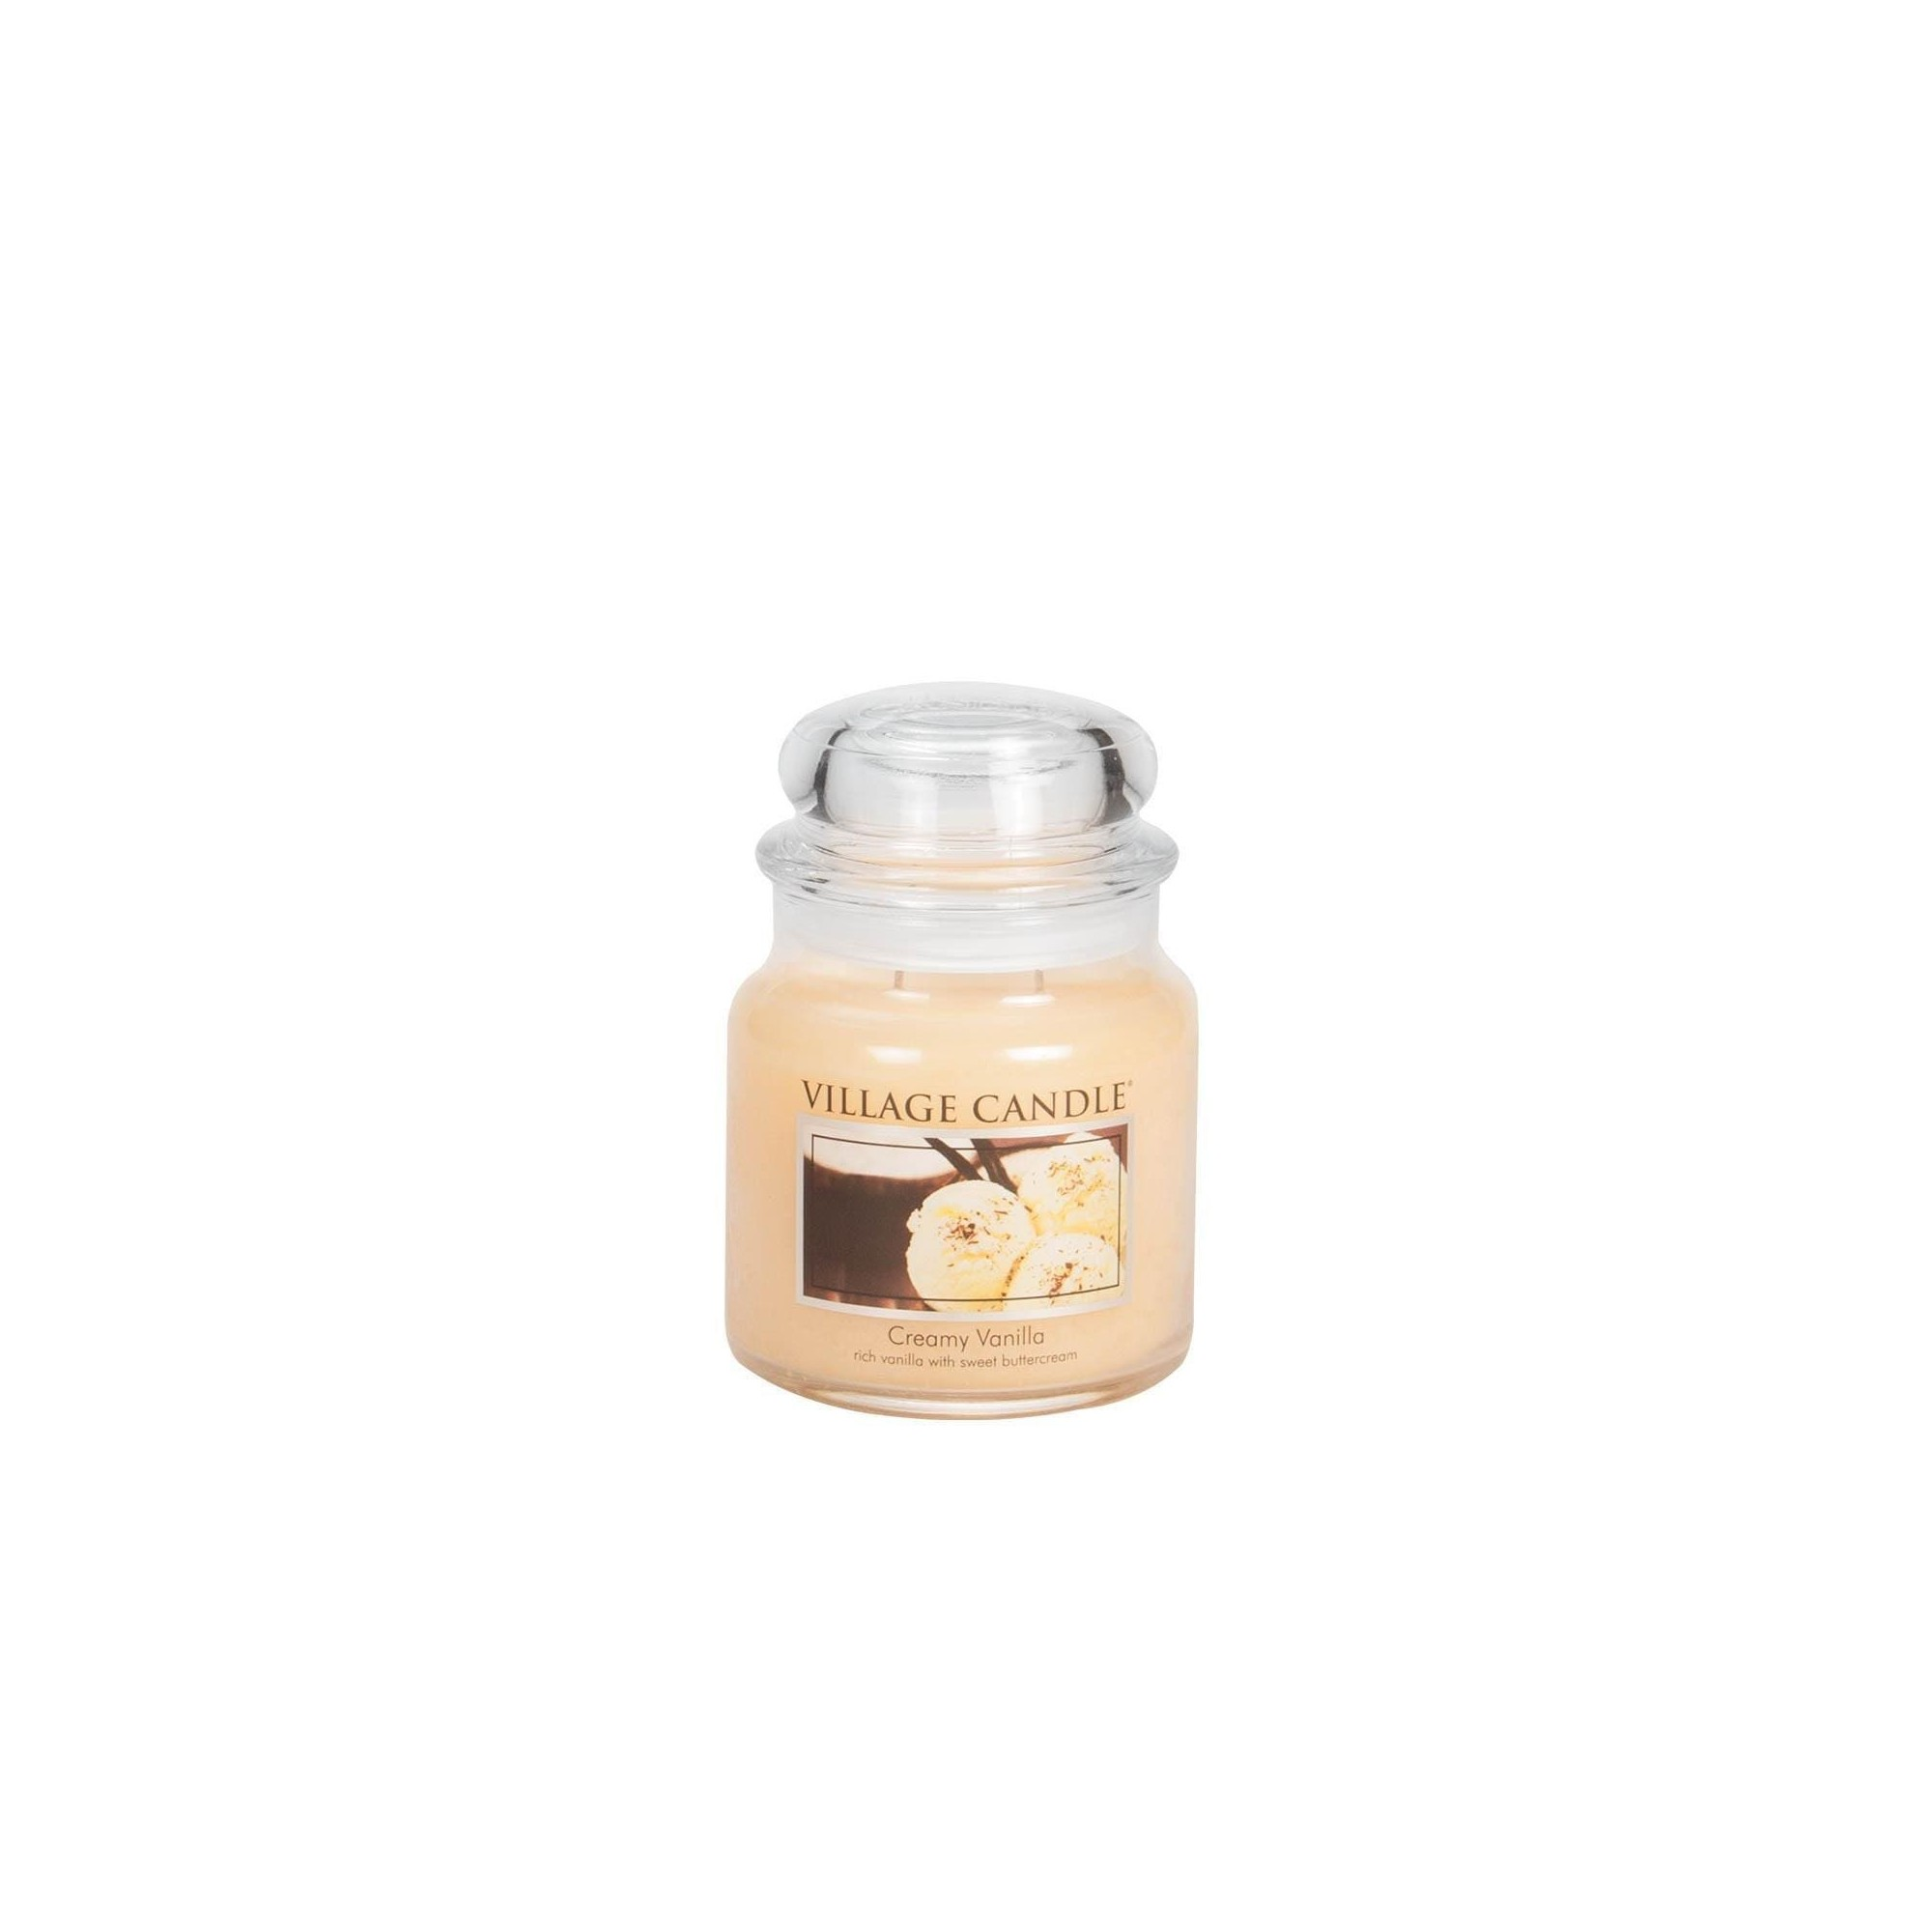 Village Candle Creamy Vanilla Medium Jar Glass